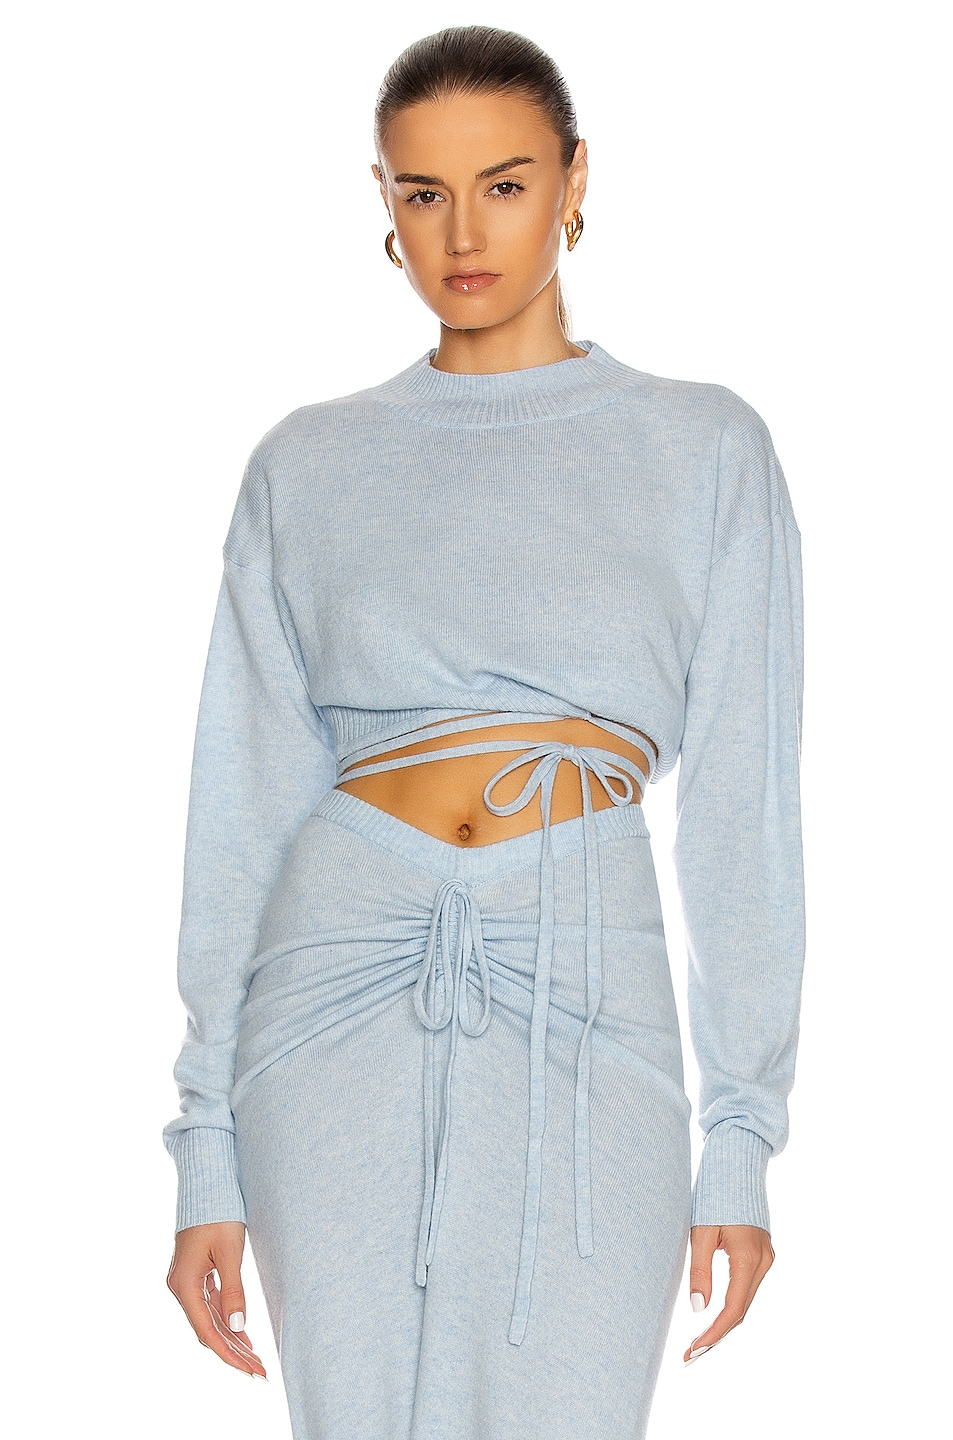 Image 1 of Christopher Esber Oversize Crop Tie Knit Top in Dusty Blue Marble